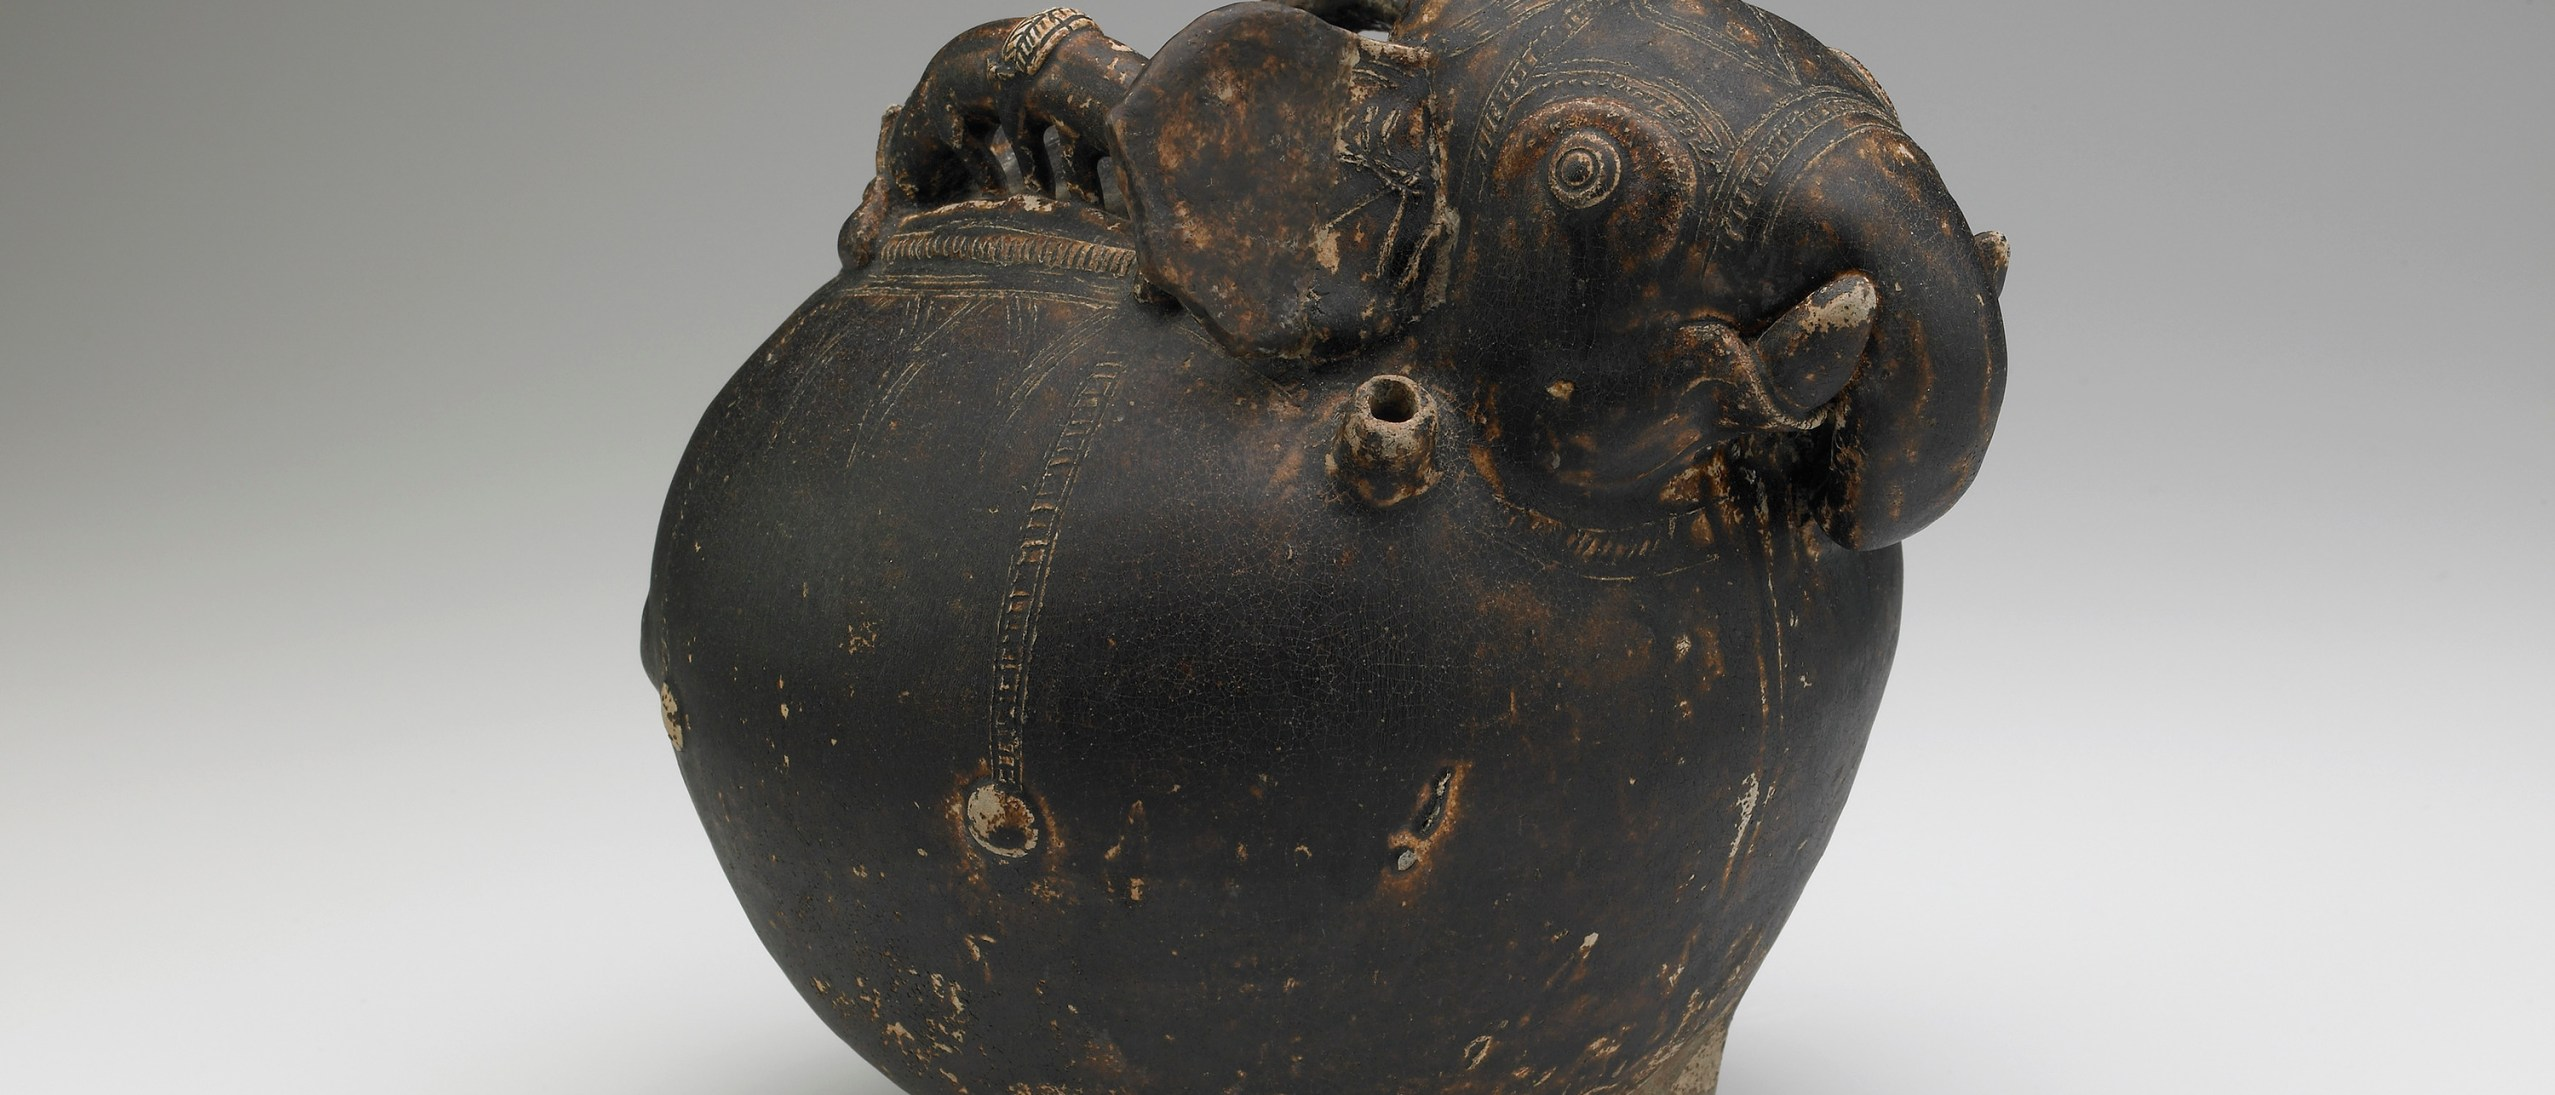 Pouring vessel in the form of a caparisoned elephant, with a spout on the shoulder